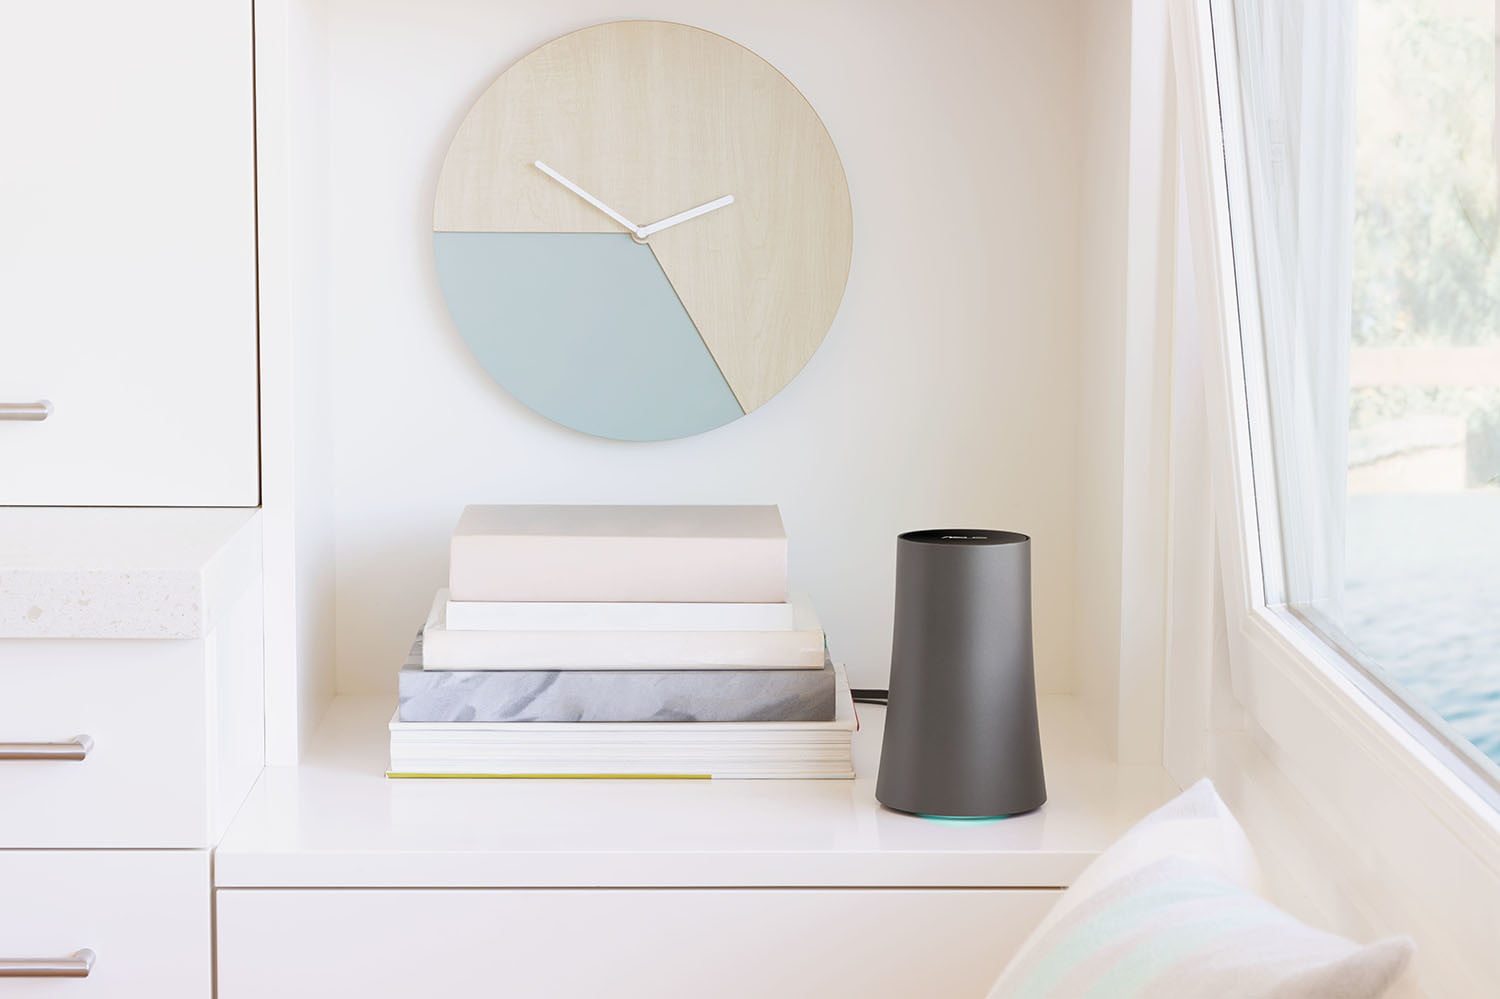 asus onhub router 06  on white shelf opt 2